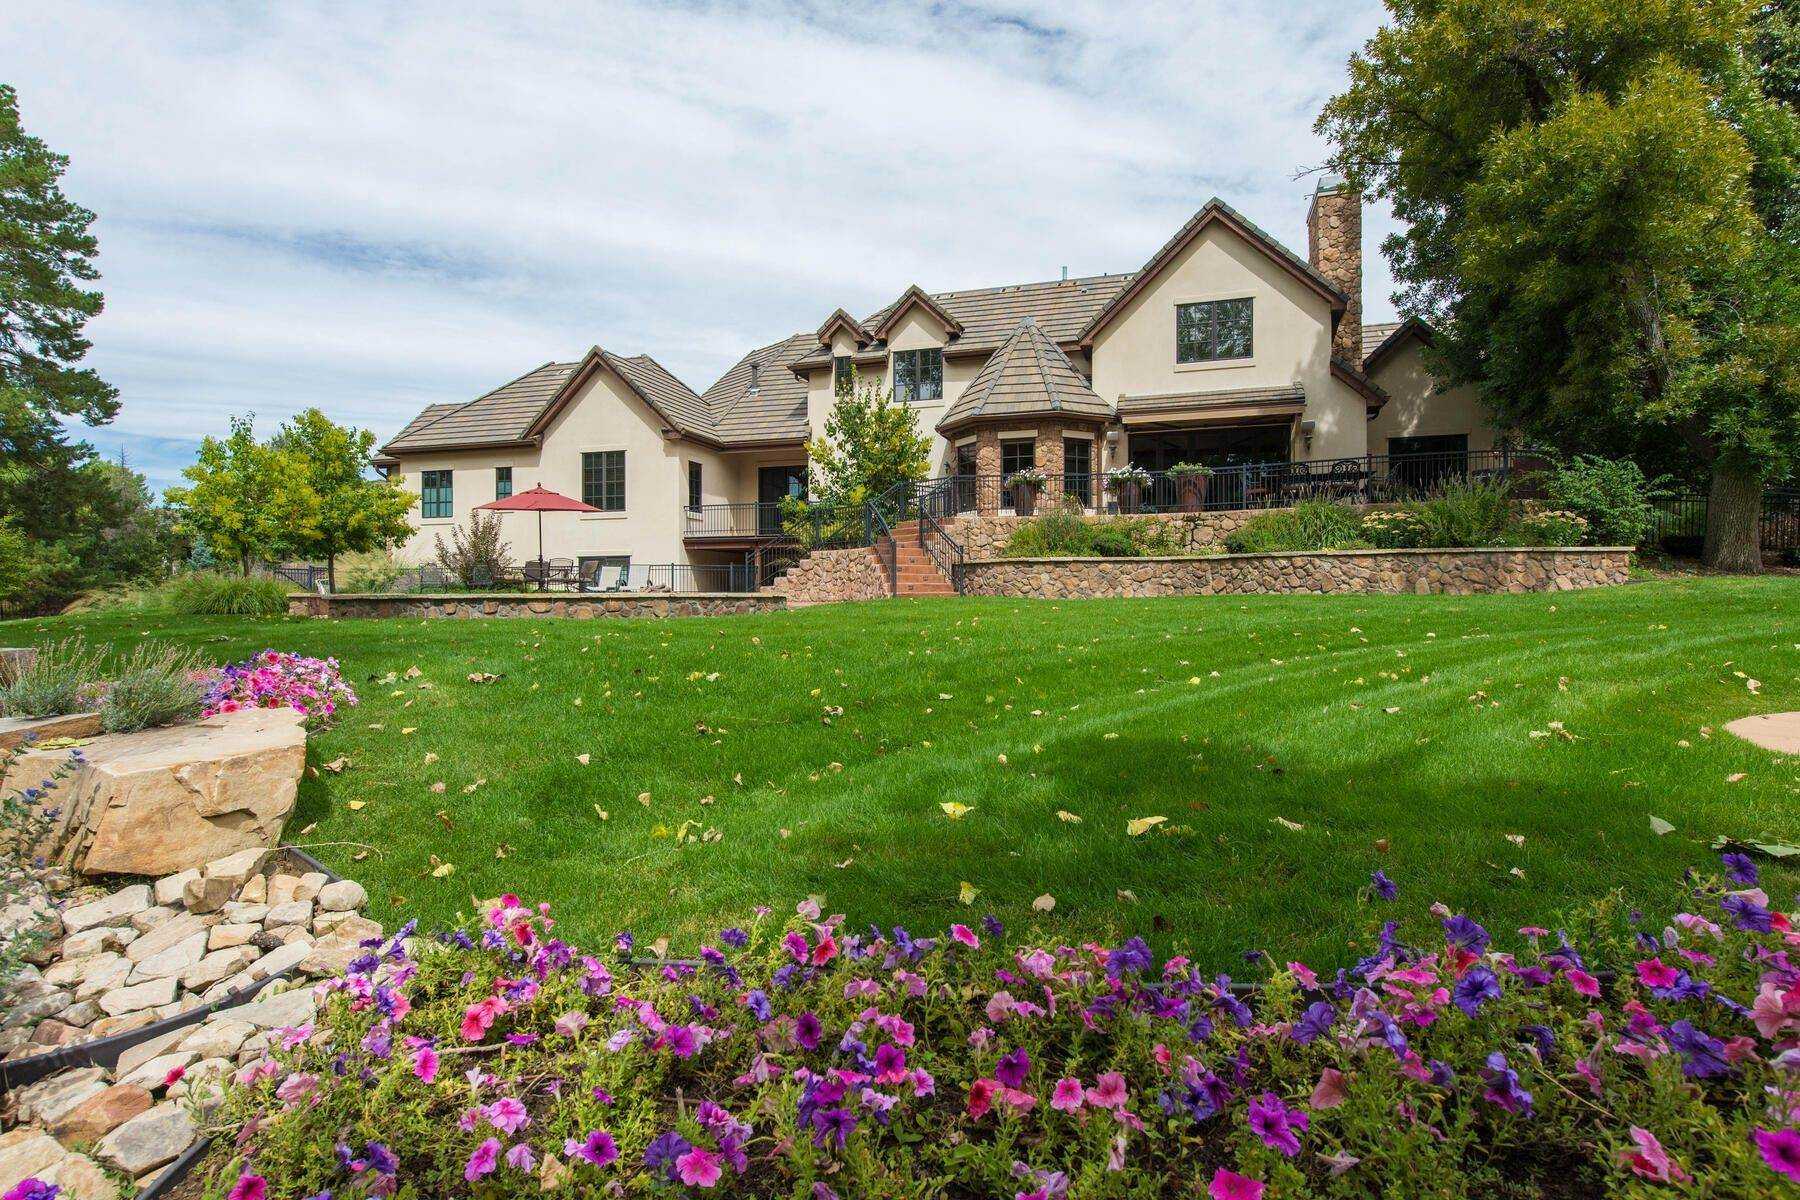 Single Family Homes for Sale at 1500 Crestridge Drive, Greenwood Village, Co, 80121 1500 Crestridge Drive Greenwood Village, Colorado 80121 United States